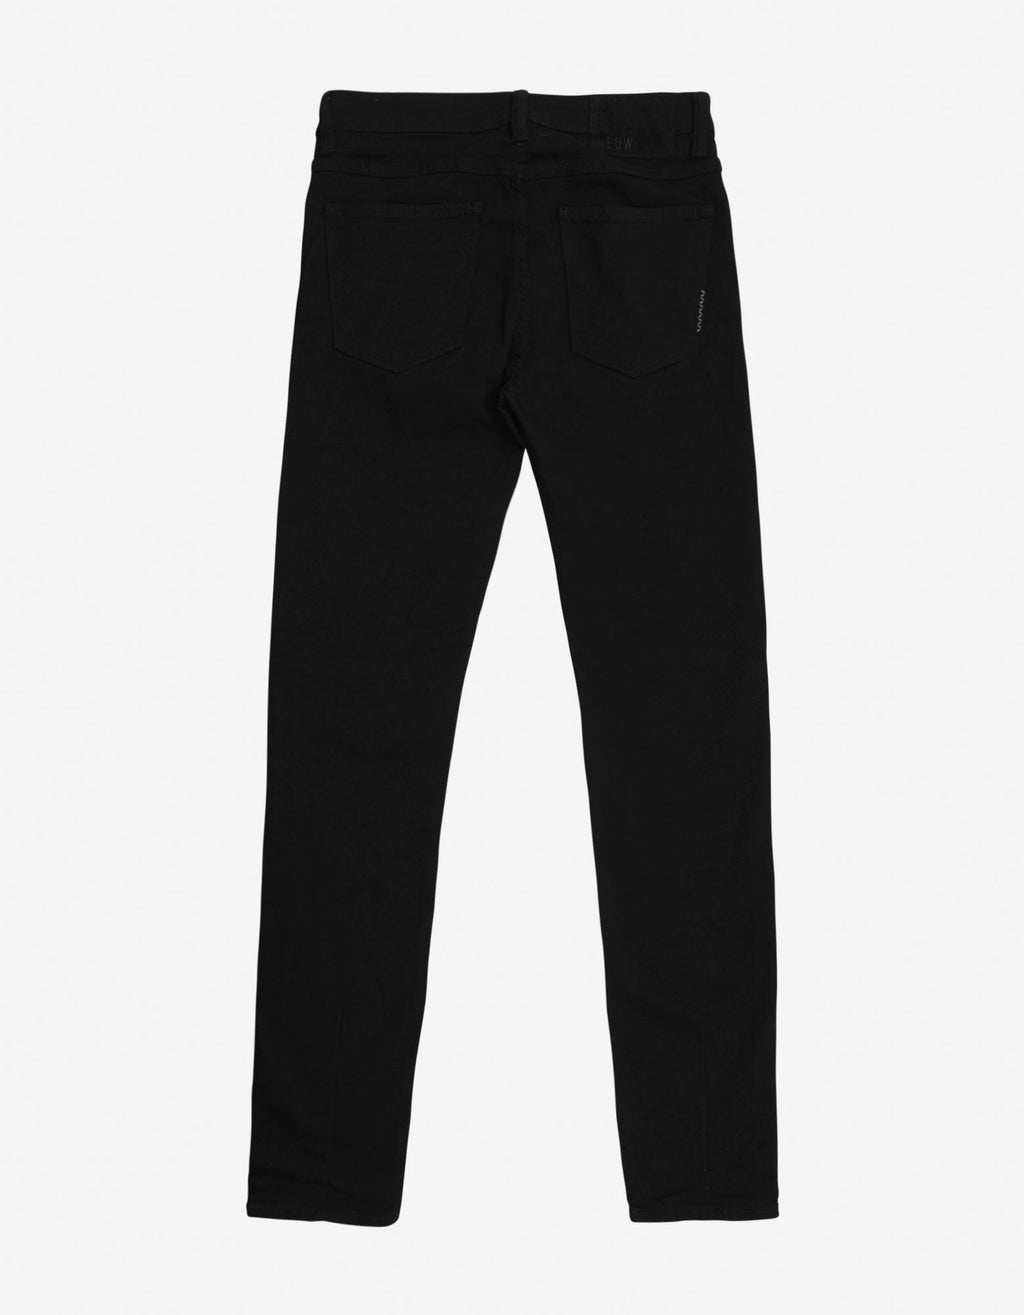 Iggy Skinny Perfecto Black Jeans